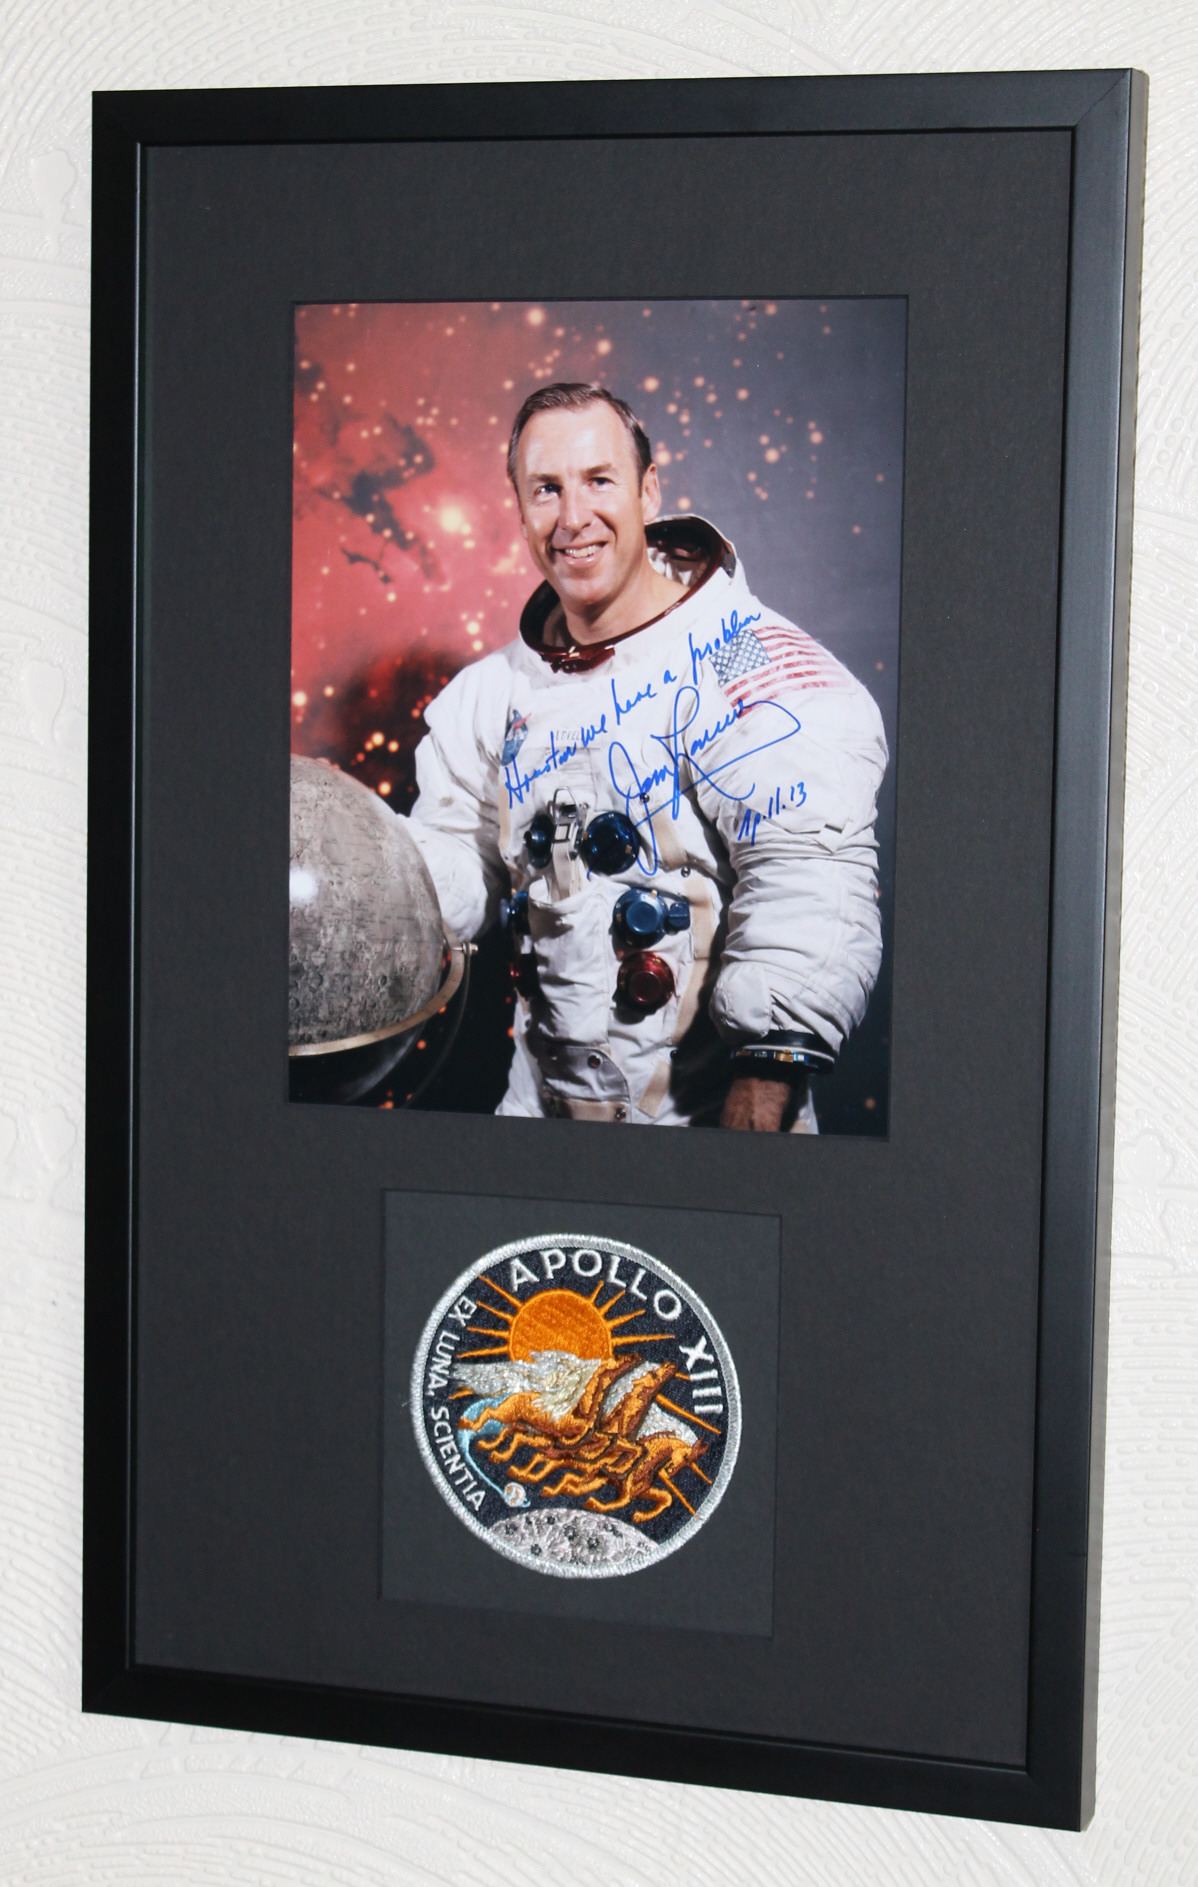 Square Events - Apollo 13 photo